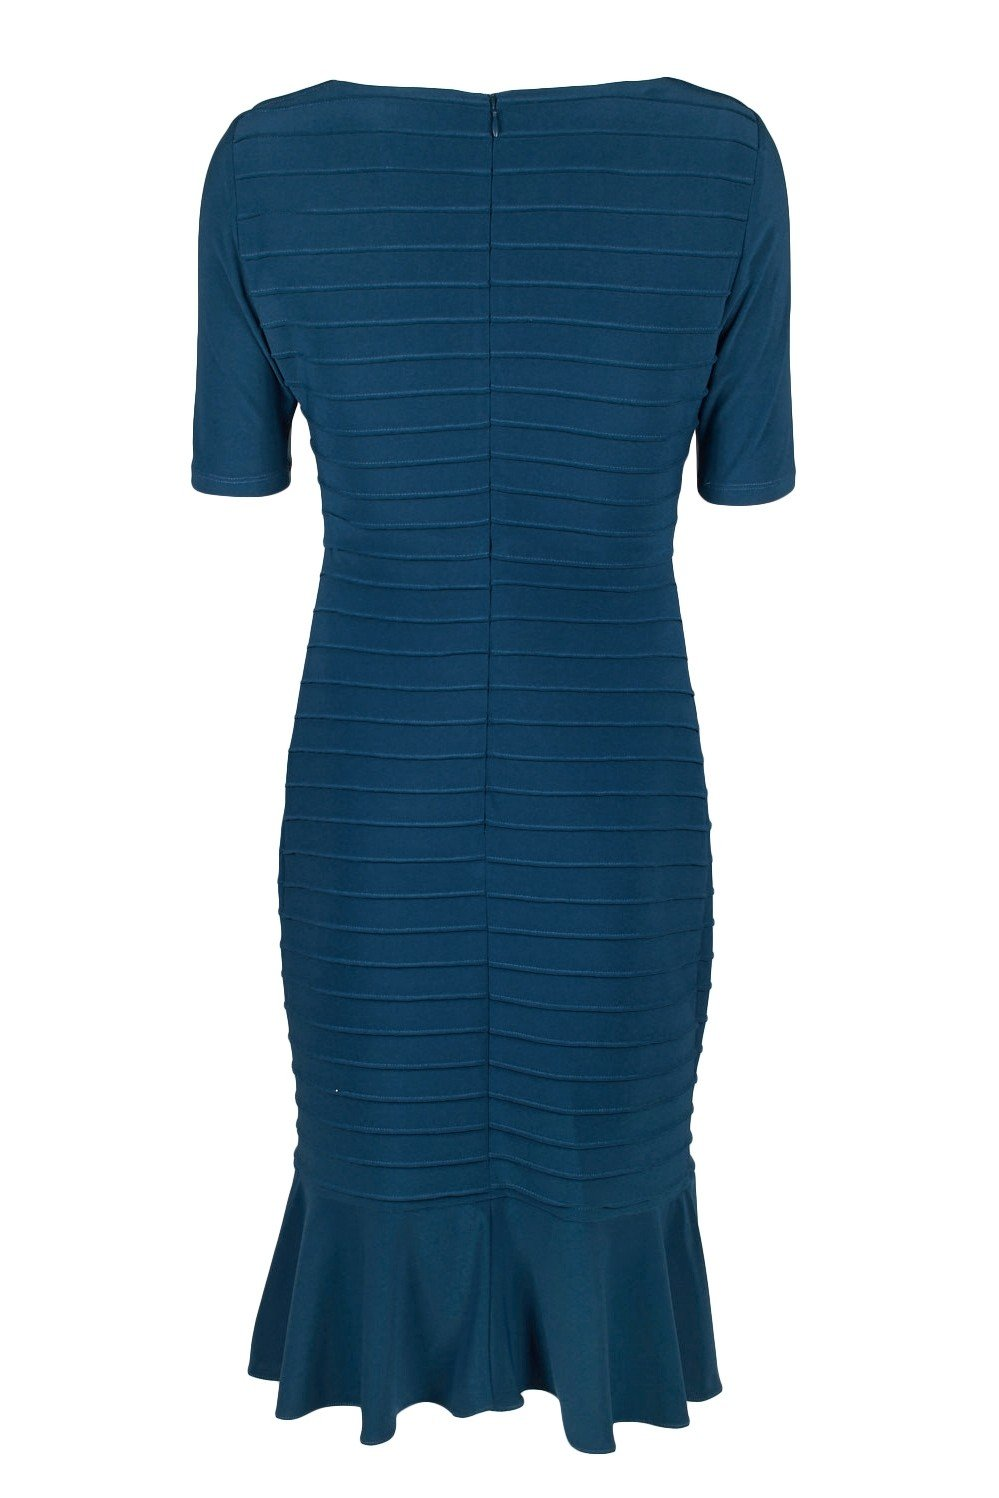 Adrianna Papell - AP1D103506 Bateau Ribbed Jersey Sheath Dress In Blue